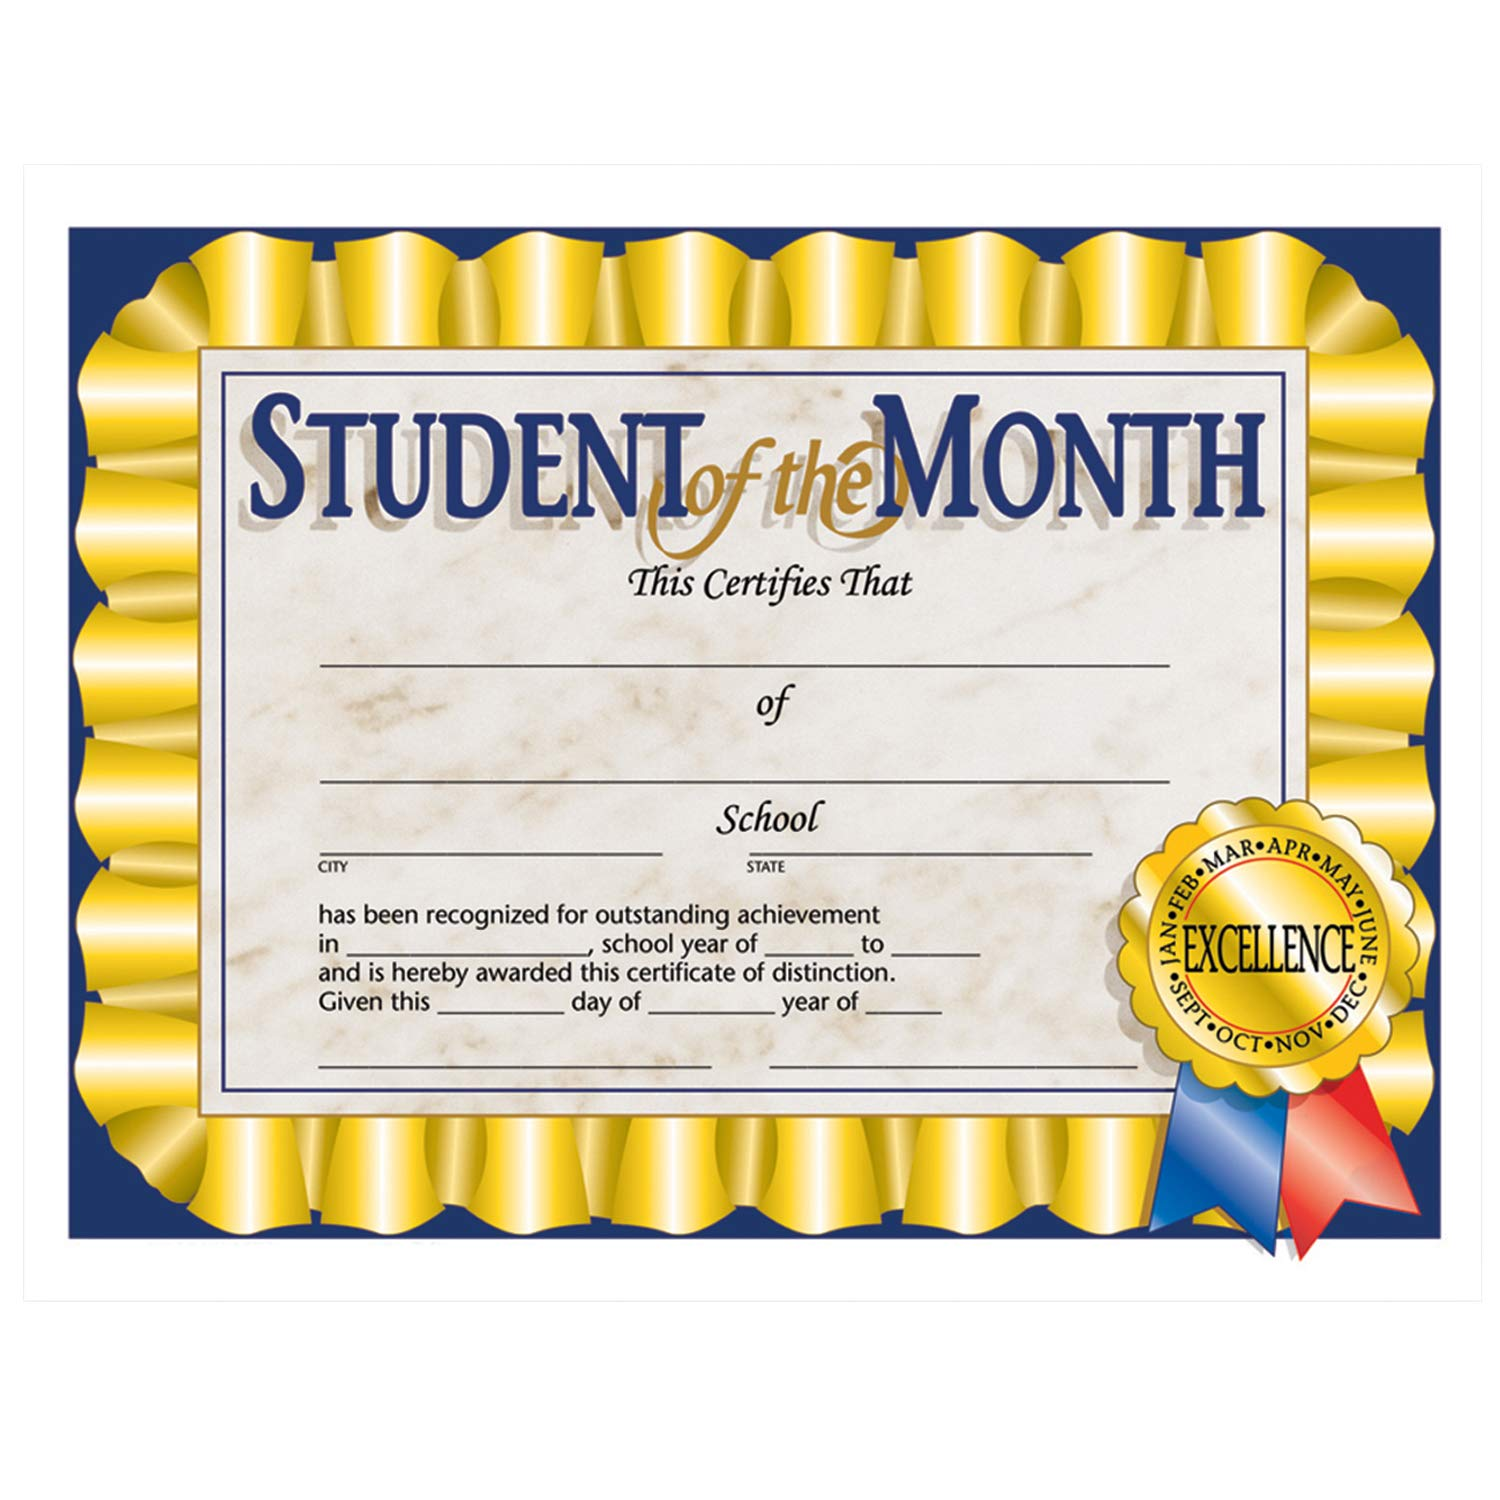 Hayes H-VA528BN Student of The Month Certificate, 8.5'' x 11'', 30 Per Pack, 6 Packs, Multicolor